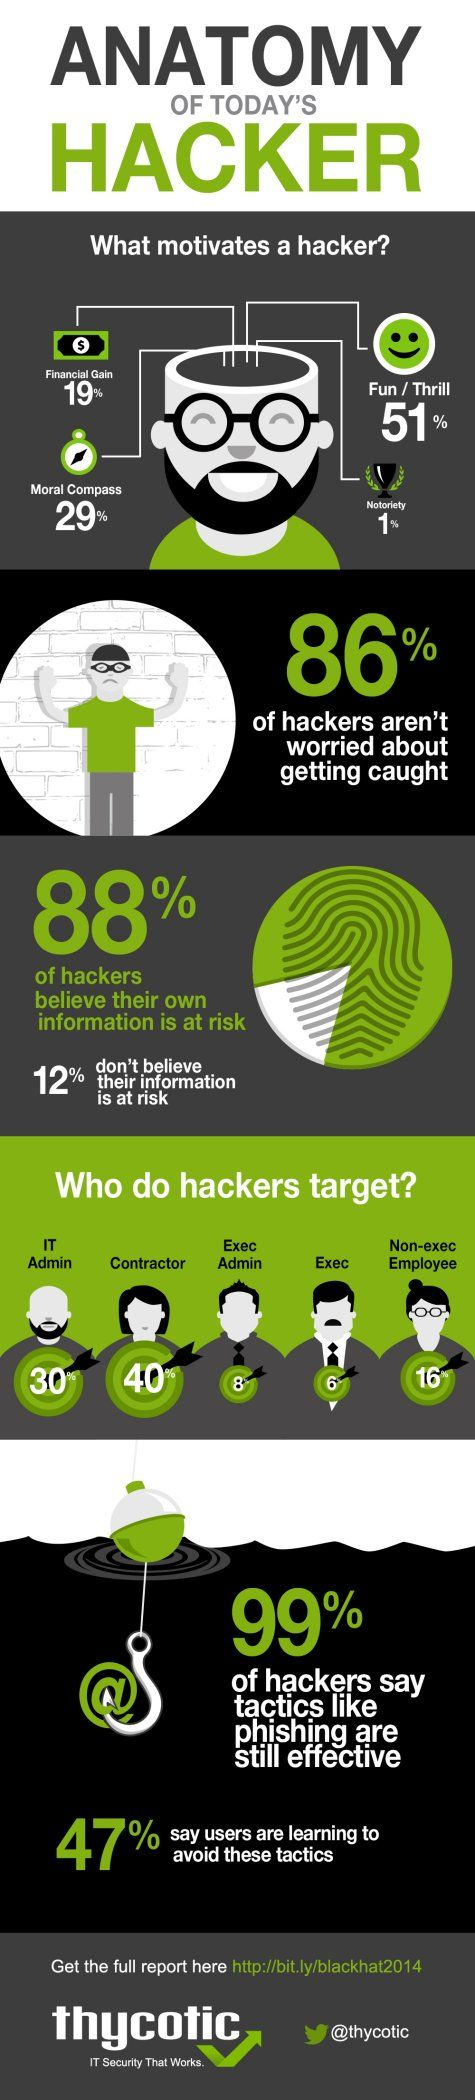 Anatomy of a Hacker - What Are Hackers Thinking?